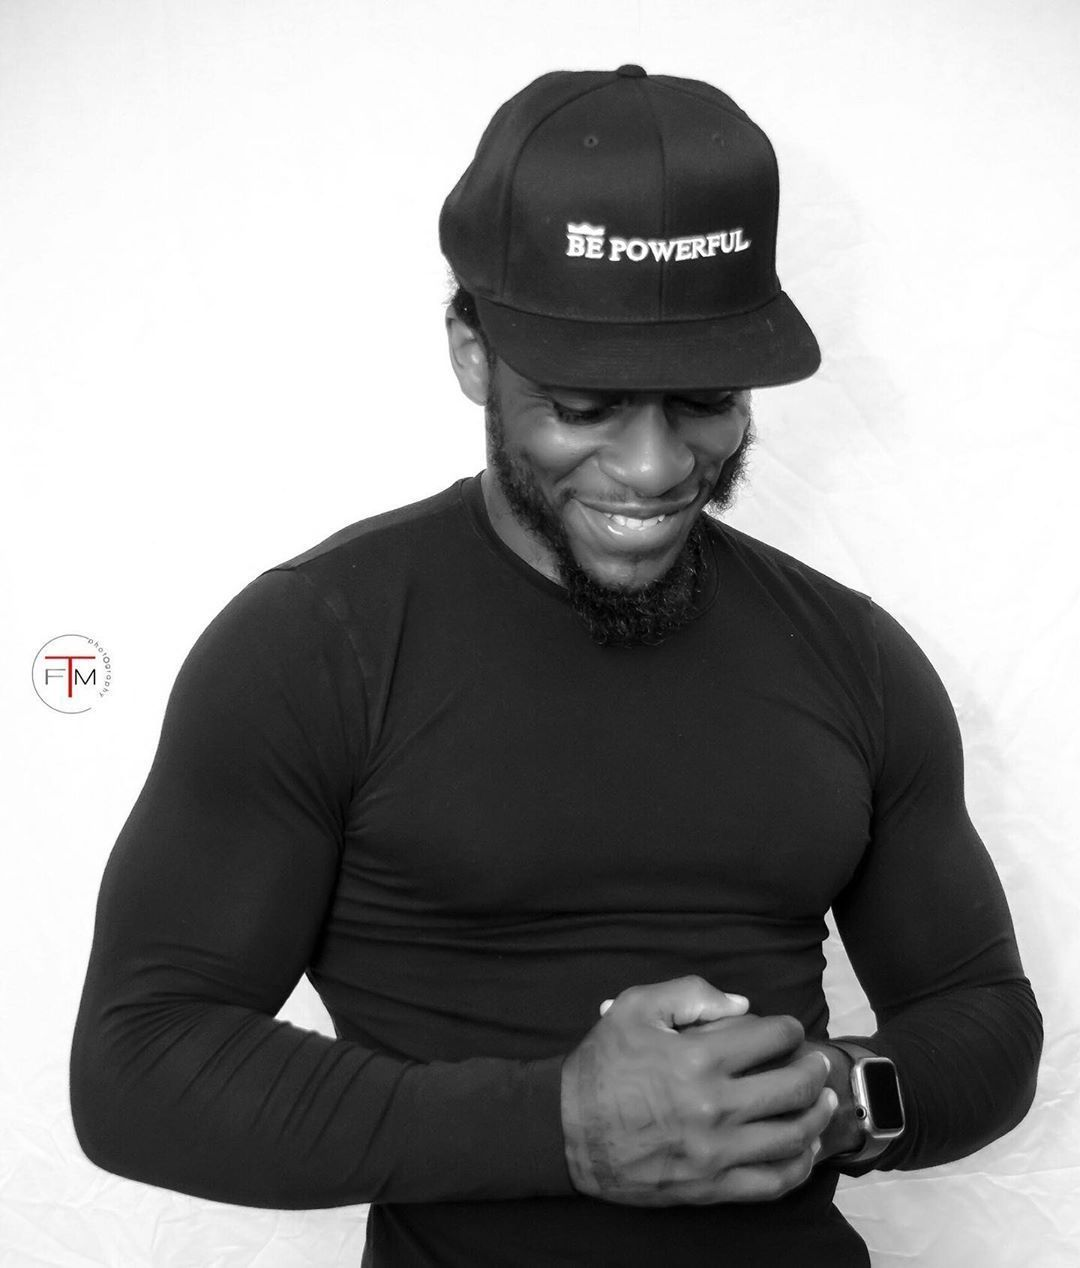 Be powerful! #mcm #bepowerful #beastmode #fitnesstrainer #chicagophotographer #strong #muscles #traps6_ #goals #blackmen #ftmphotog #headshots #blackandwhitephotography #events #tndo #gracious #feelthismomentphotography #brandingphotography #fitness #fitnessgoals #personaltrainer #celebritytrainer #workout #trapsworkout Be powerful! #mcm #bepowerful #beastmode #fitnesstrainer #chicagophotographer #strong #muscles #traps6_ #goals #blackmen #ftmphotog #headshots #blackandwhitephotography #events # #trapsworkout